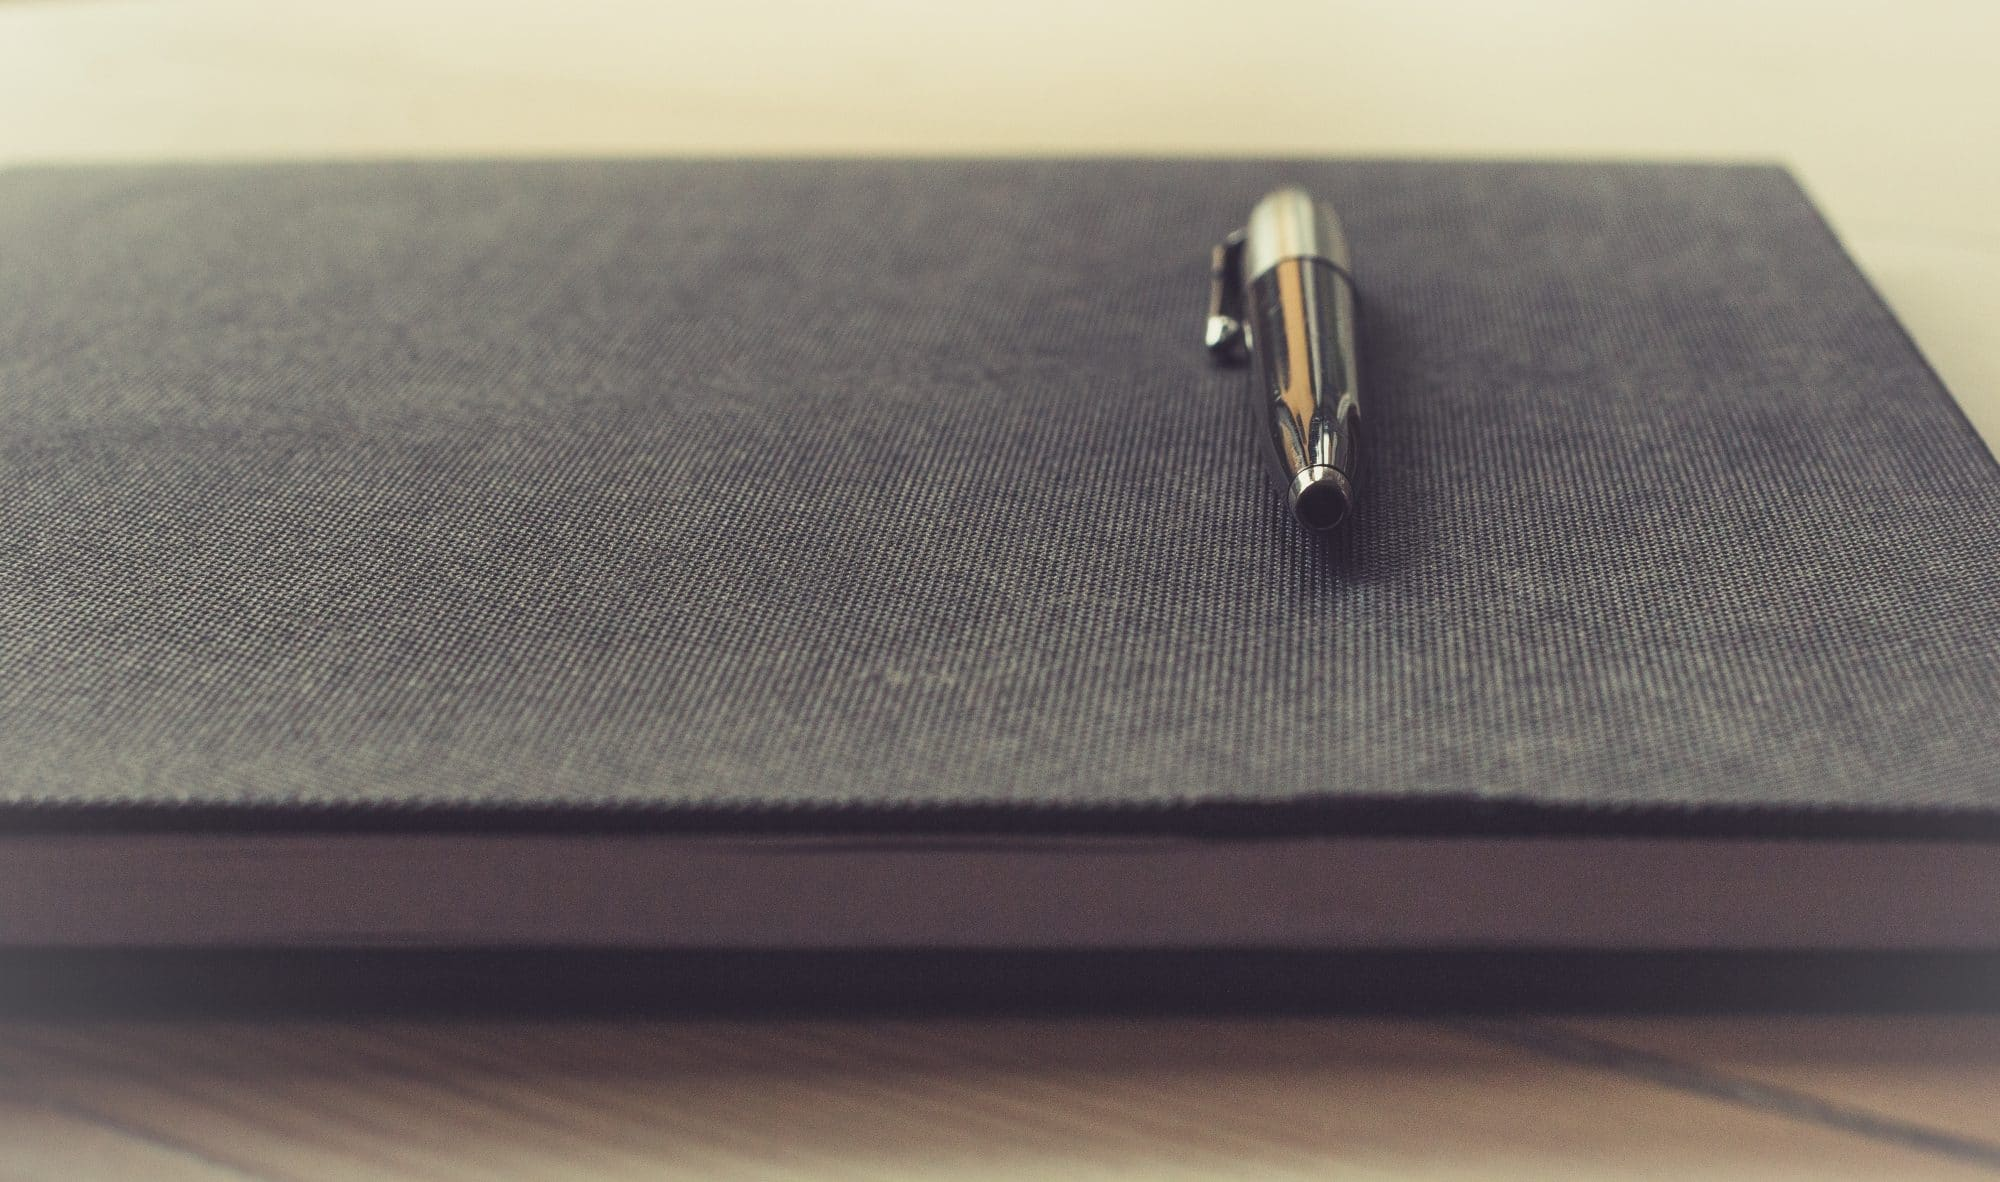 pen on top of document book